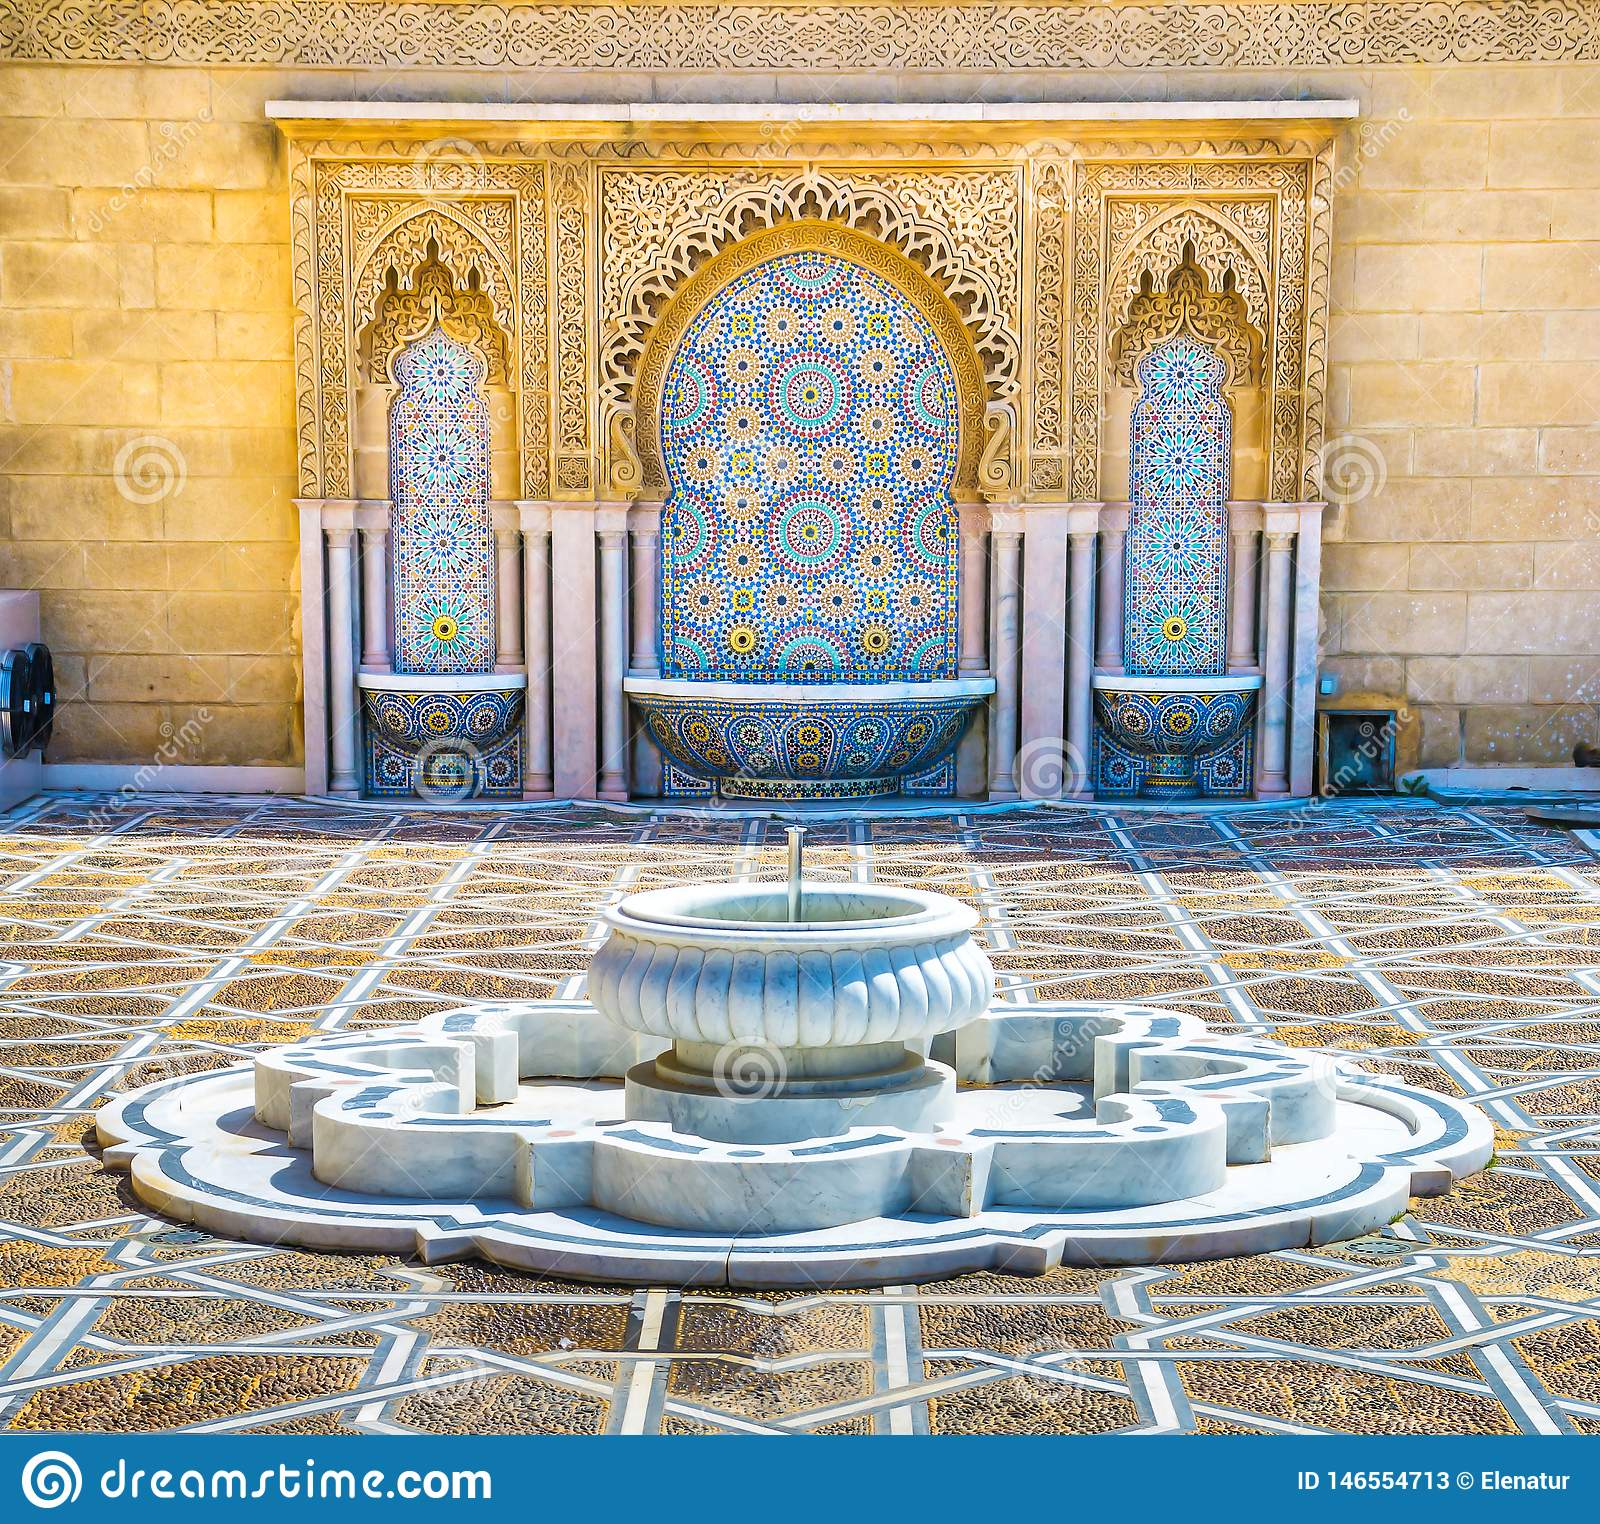 Moroccan 8x10 FT Backdrop Photographers,Typical Moroccan Tiled Fountain in The City of Rabat Near Hassan Tower Background for Child Baby Shower Photo Vinyl Studio Prop Photobooth Photoshoot